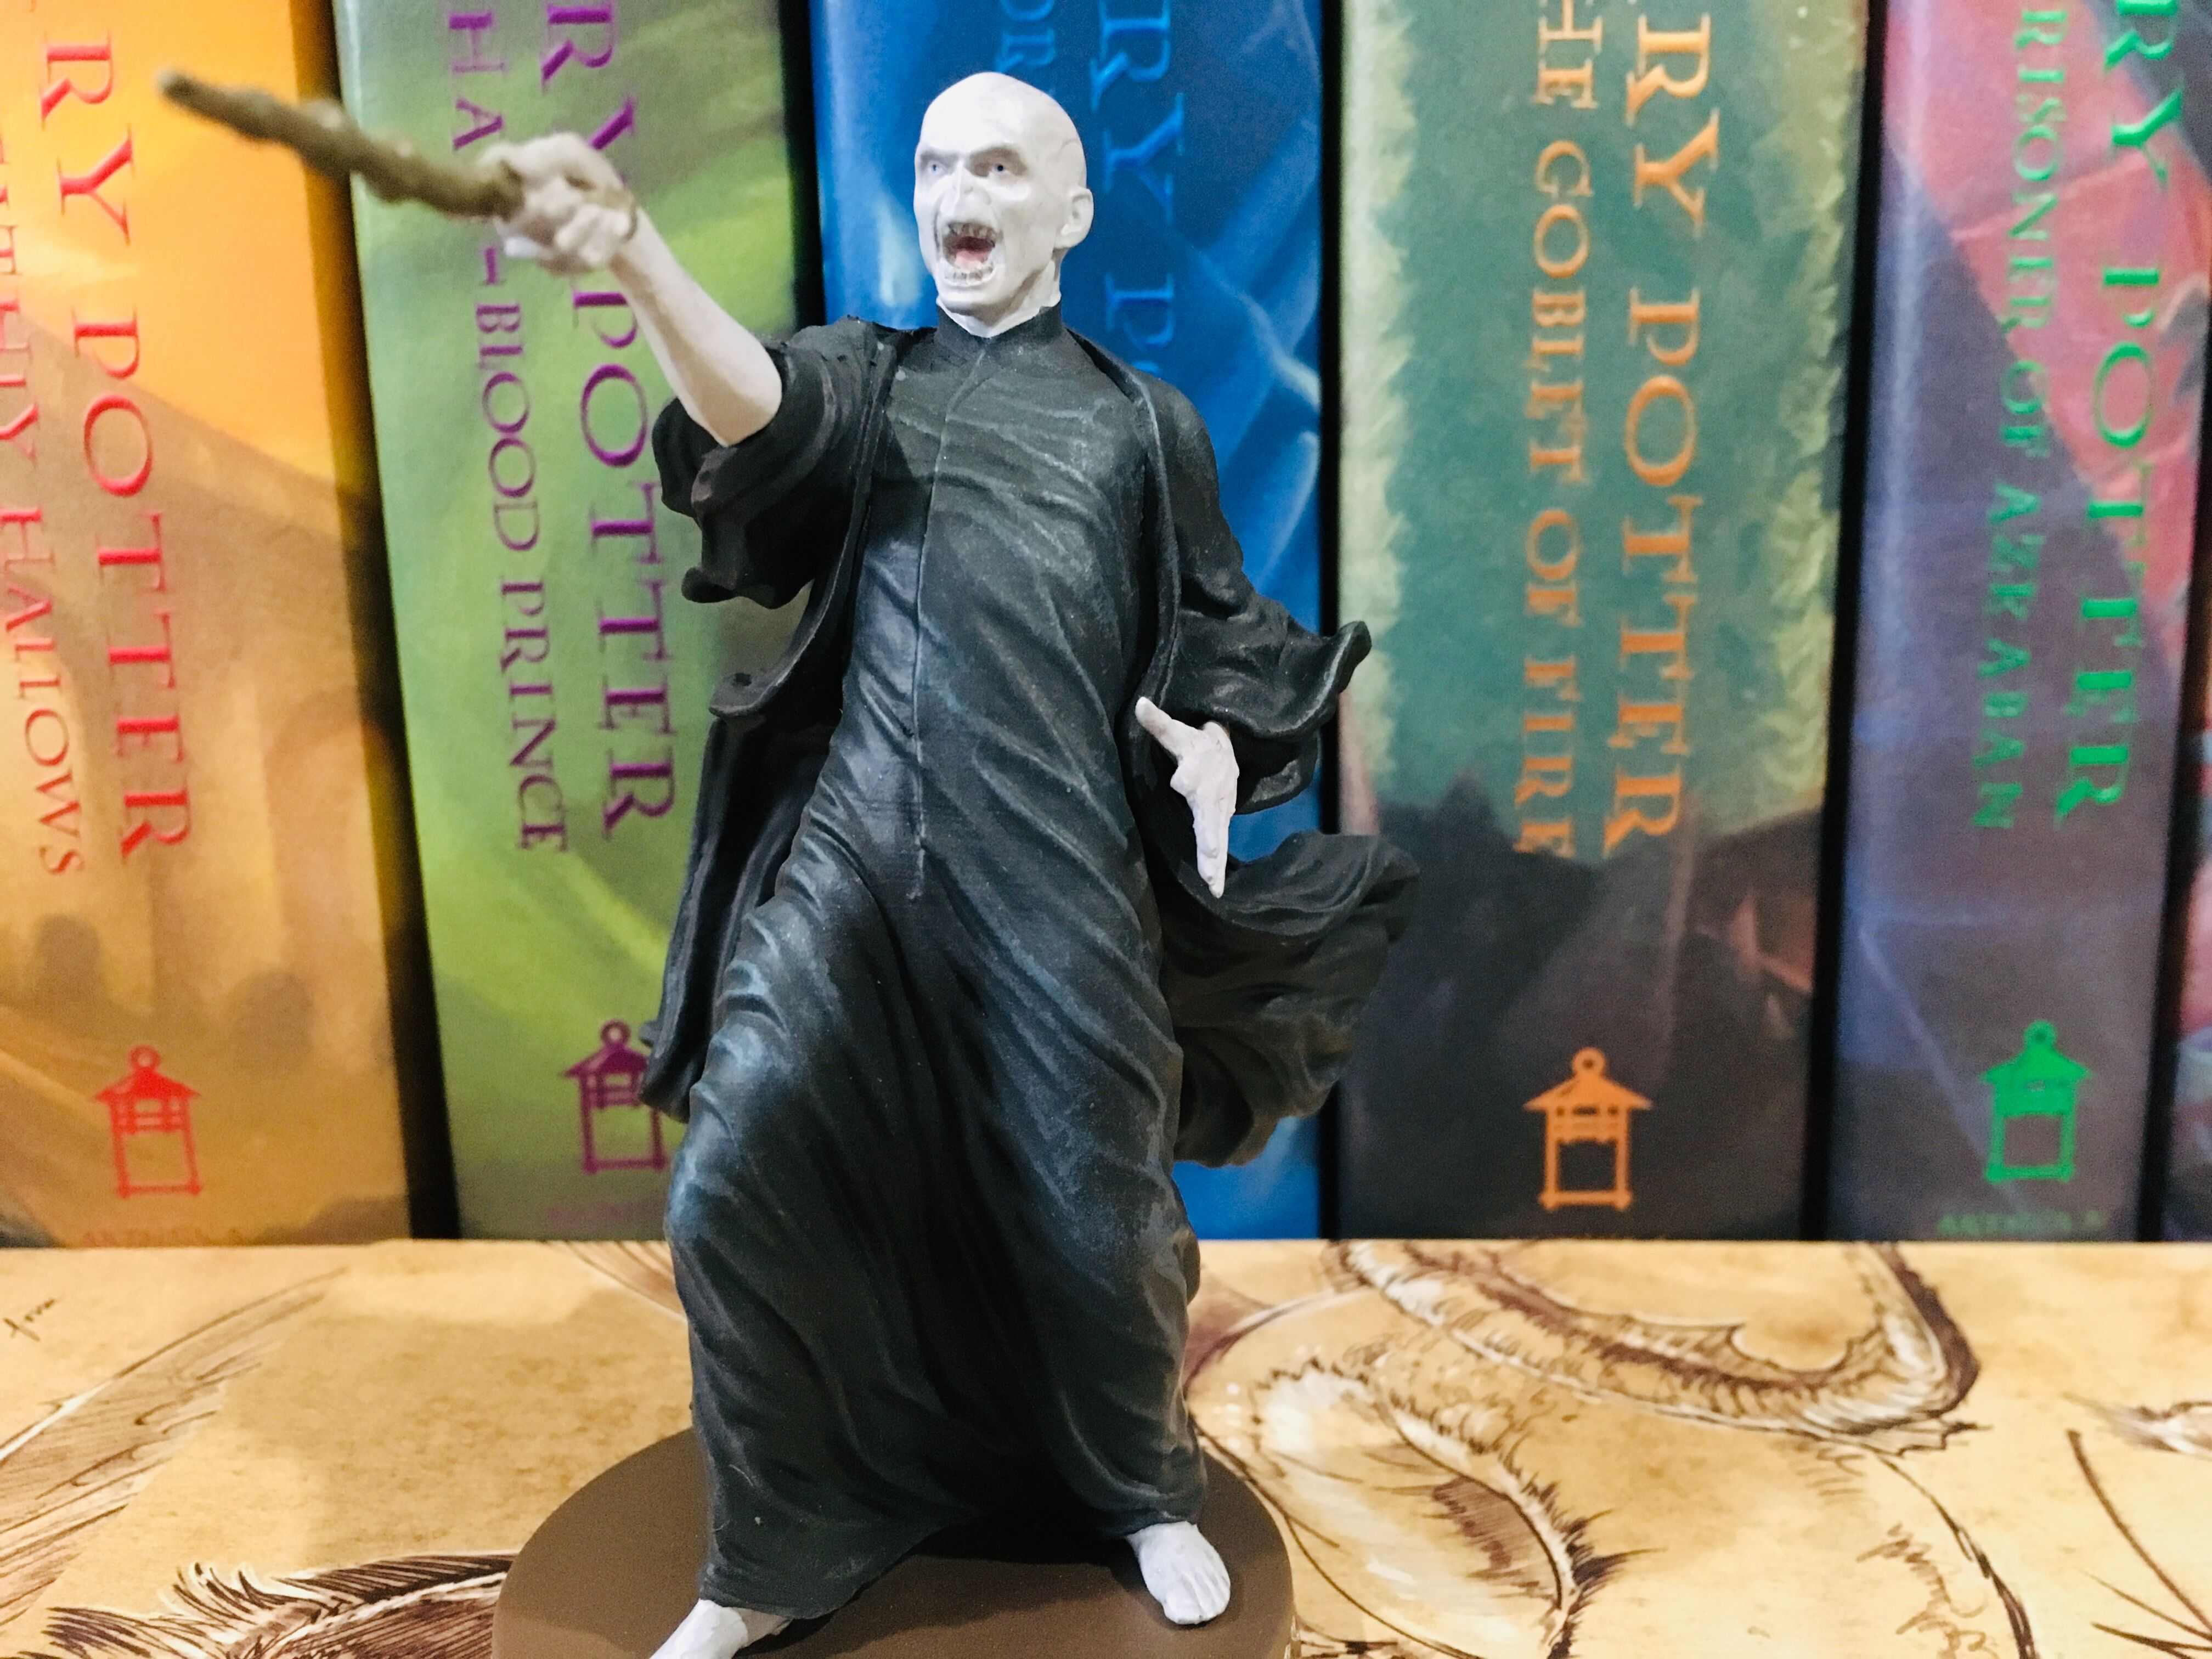 Voldemort's jubilation at battling Harry can be clearly seen in his extremely detailed face.